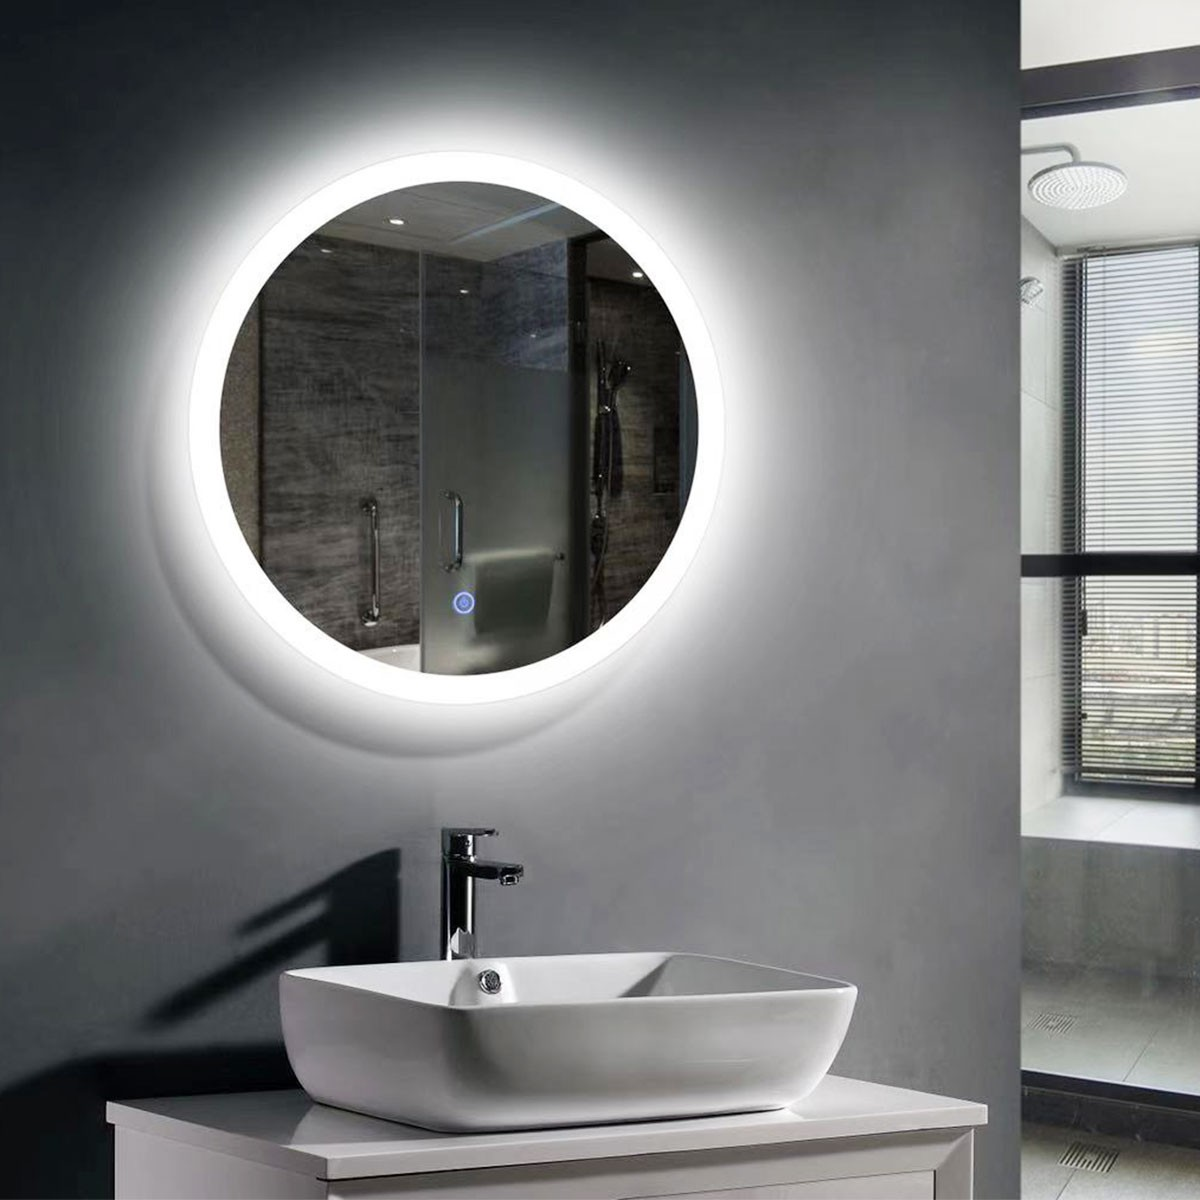 24 x 24 In Round LED Bathroom Mirror, Touch Button (DK-OD-CL065-1)